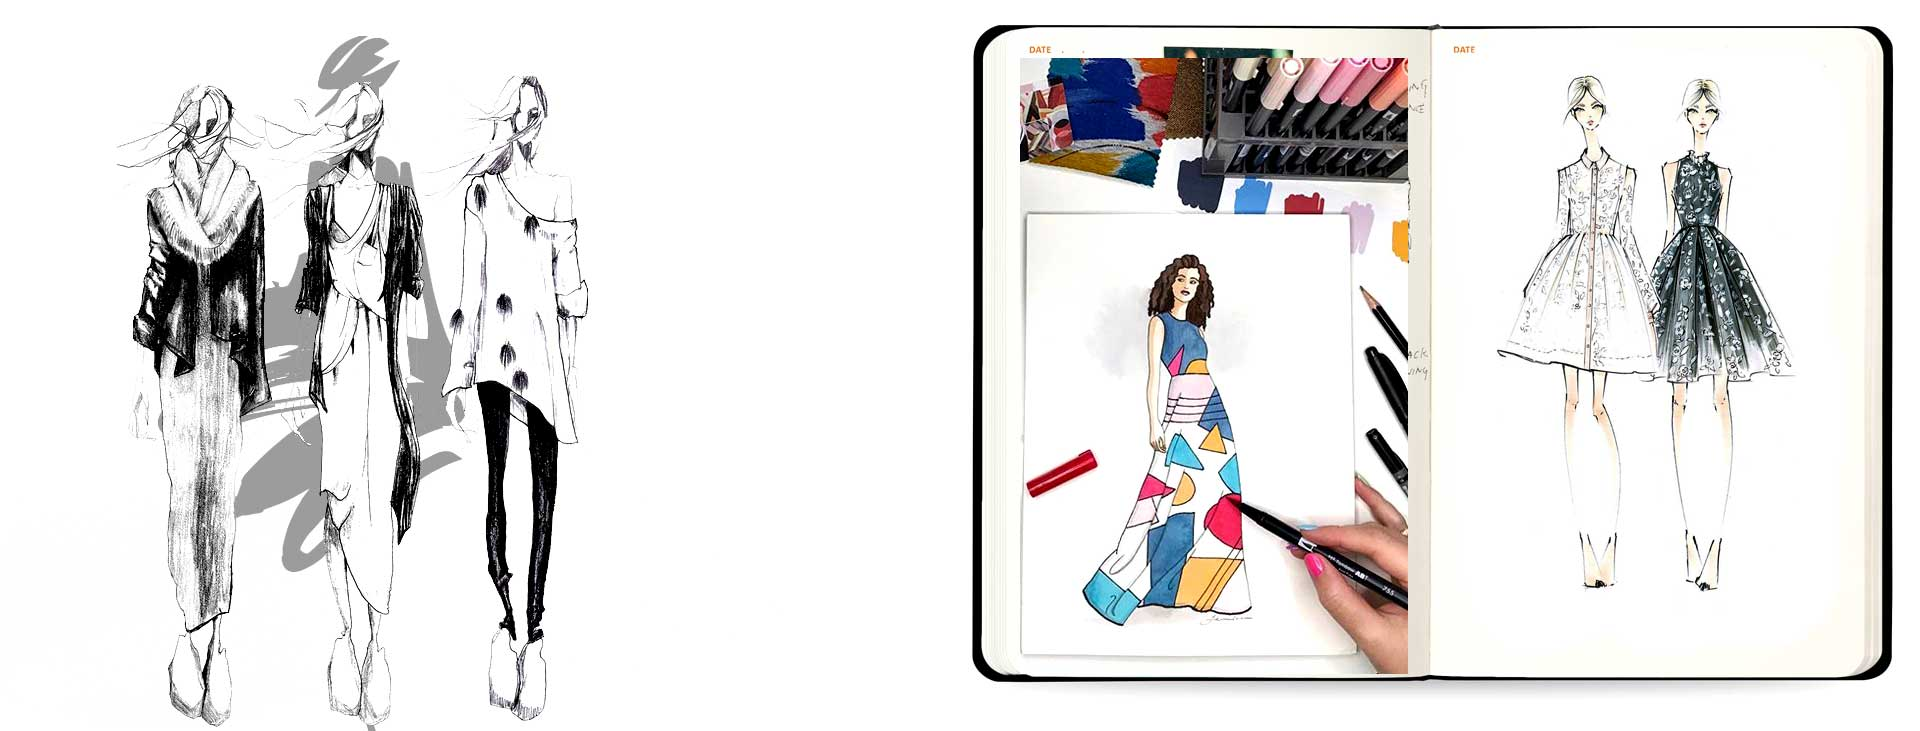 Drawing in Fashion 7 - اسکیس مُد